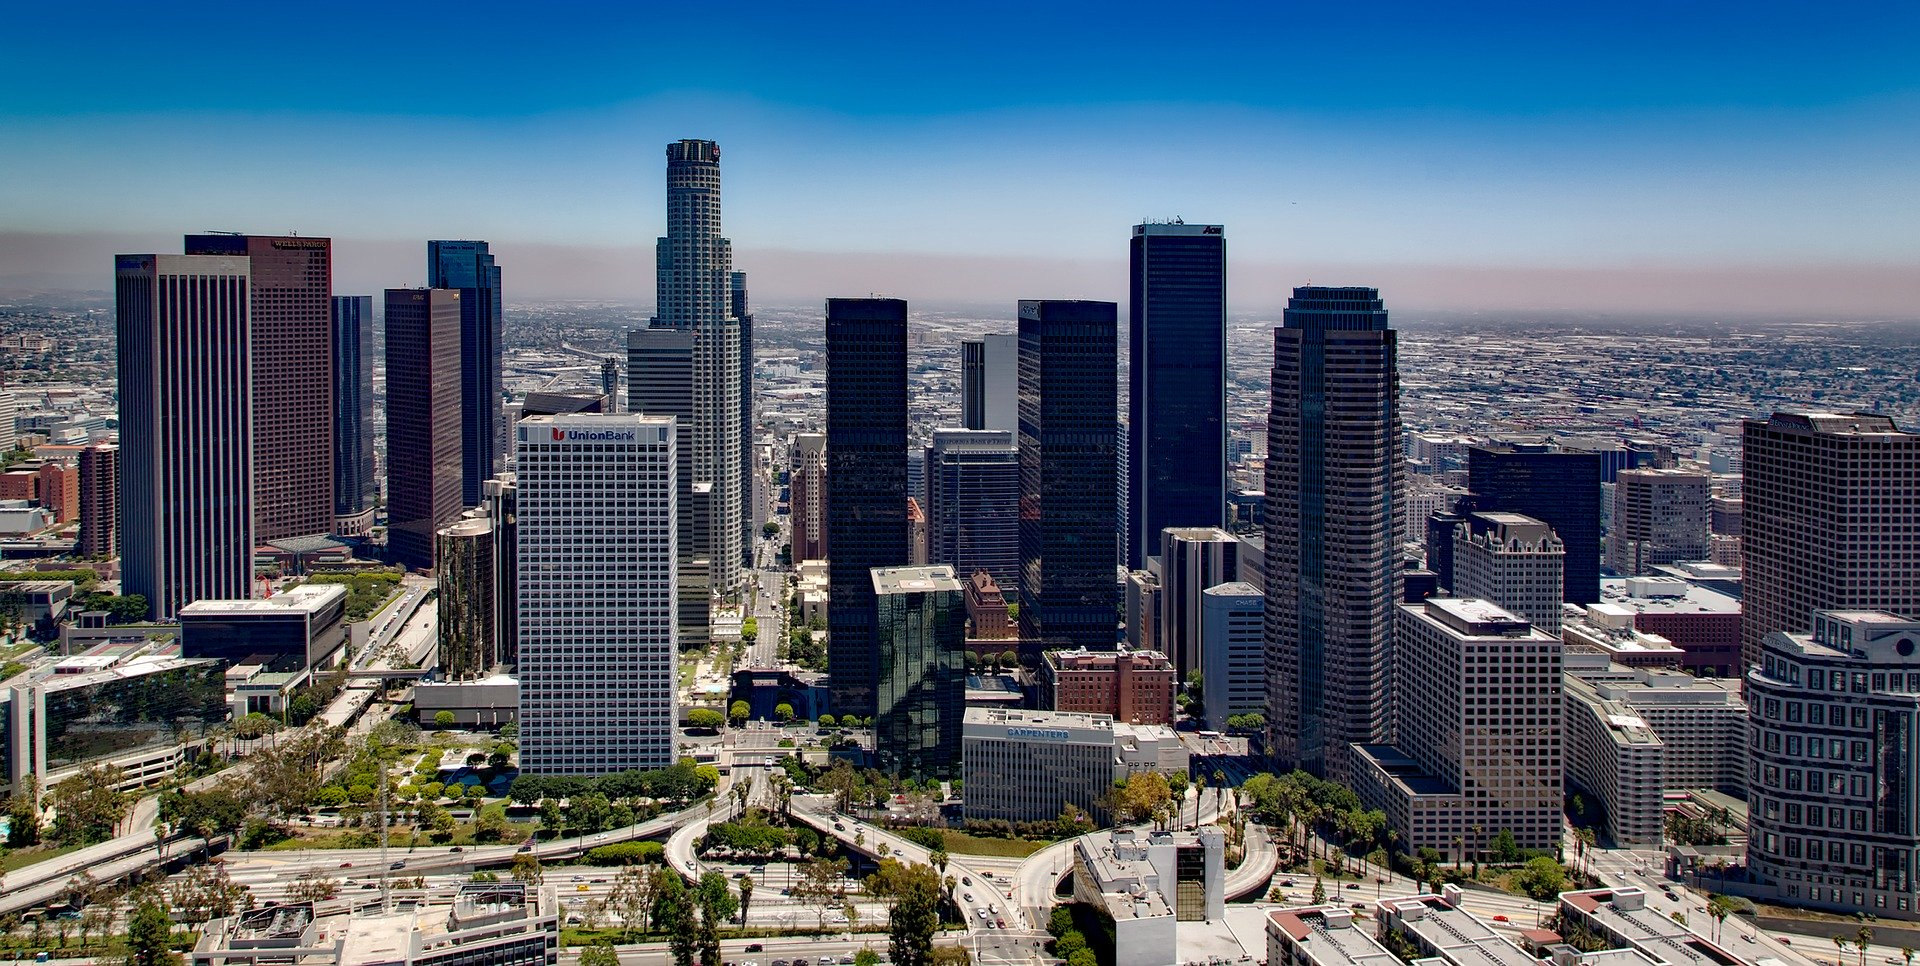 Is Los Angeles going to be the next New York when it comes to coronavirus?